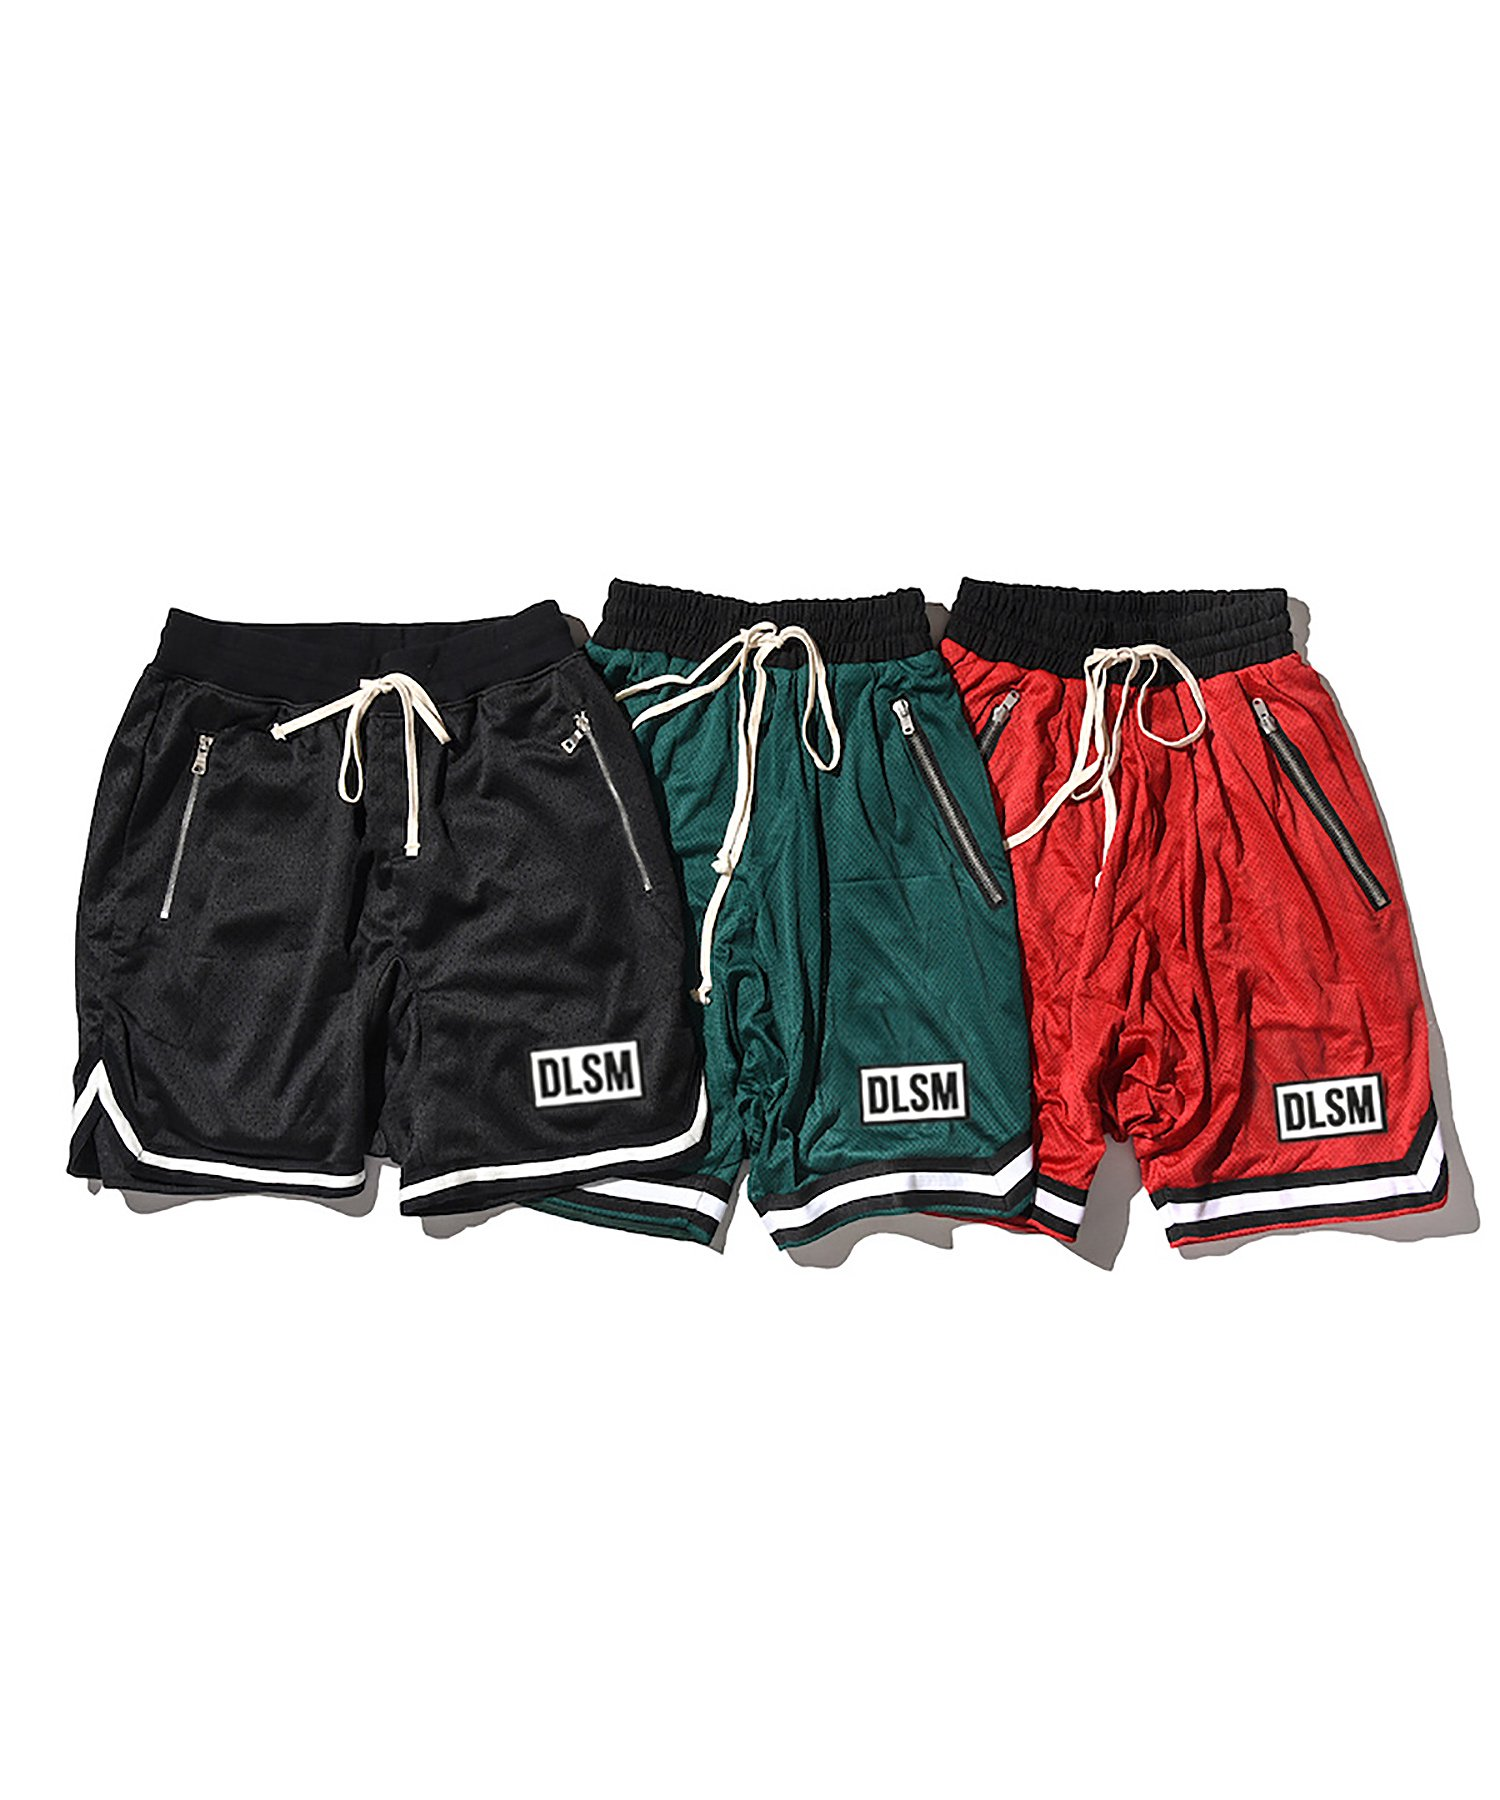 DLSM WAPPEN BASKETBALL MESH SHORTS